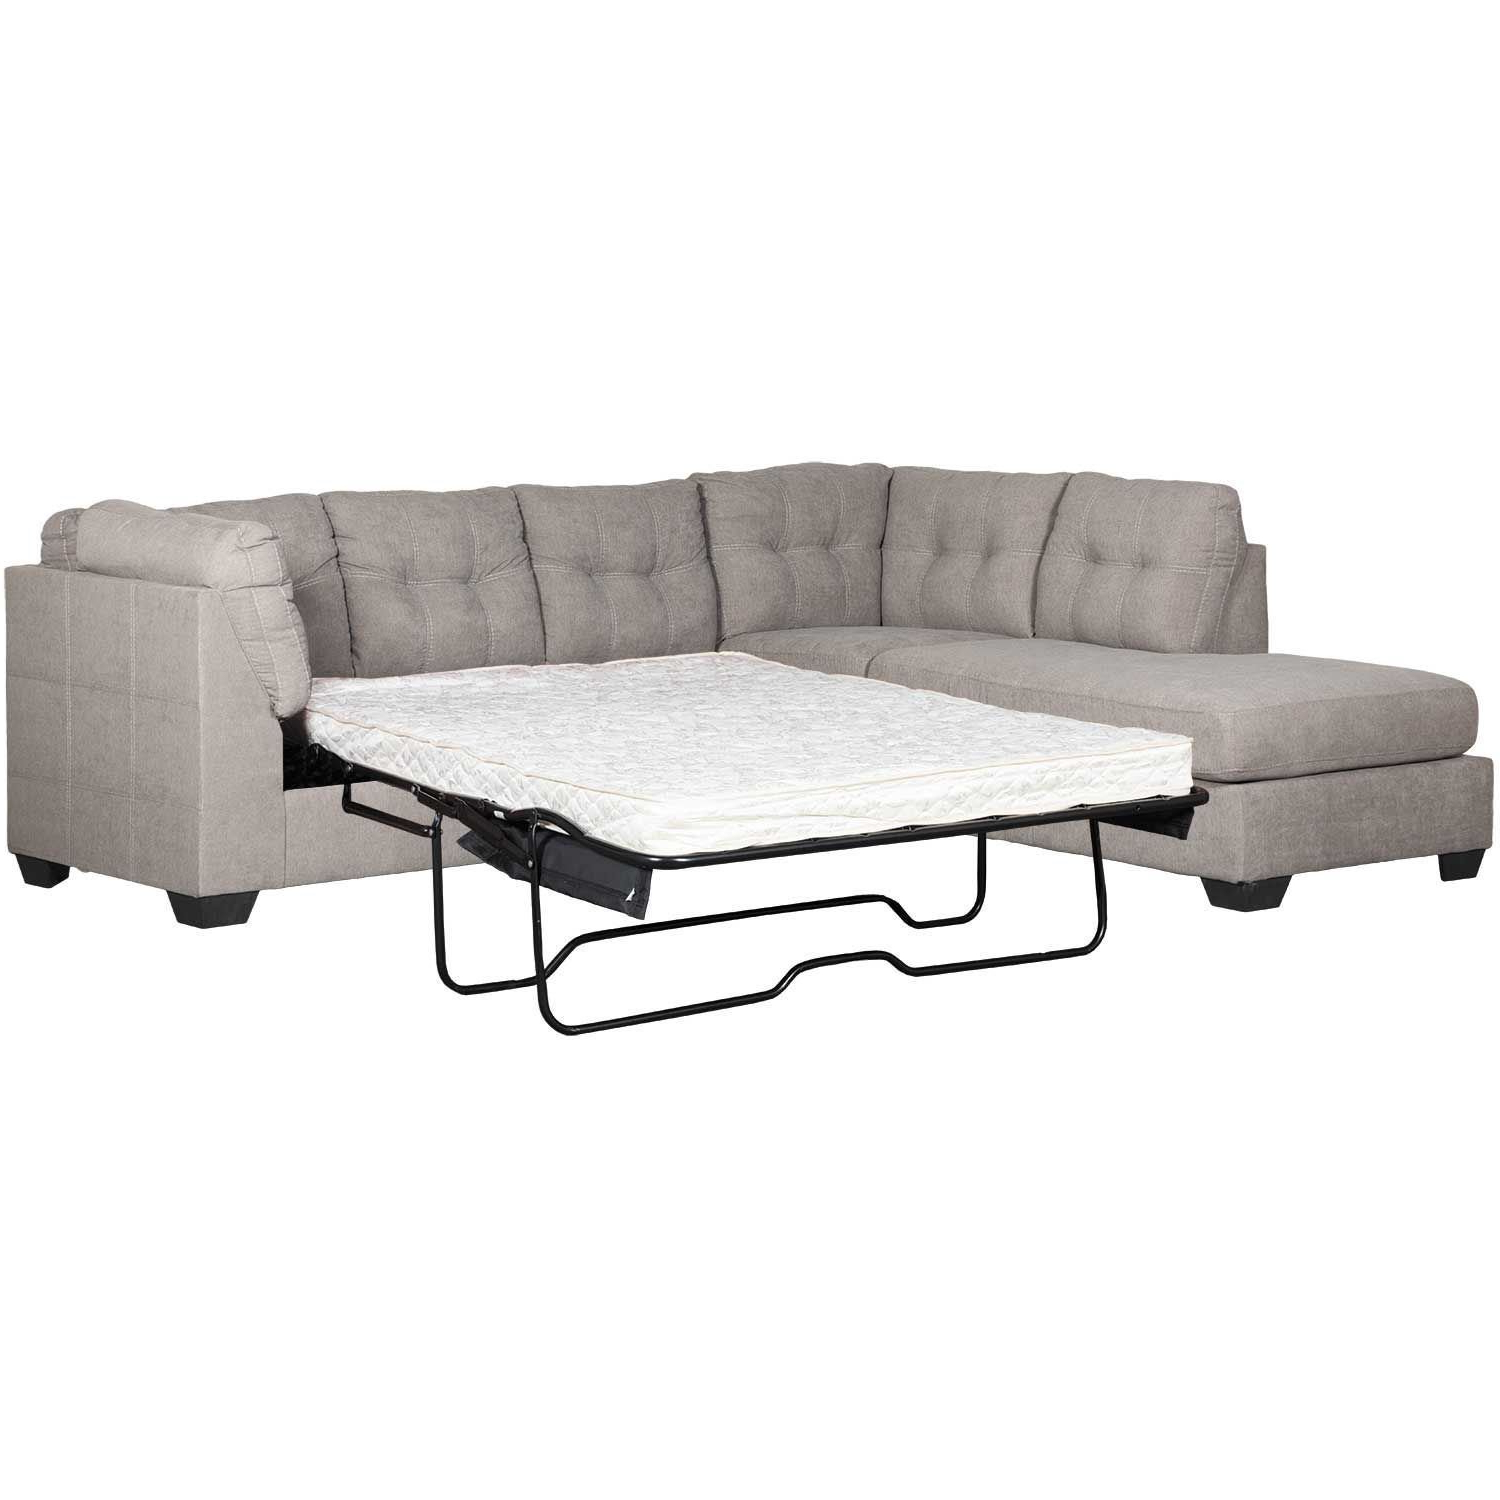 2018 Sleeper Sectional (View 10 of 20)